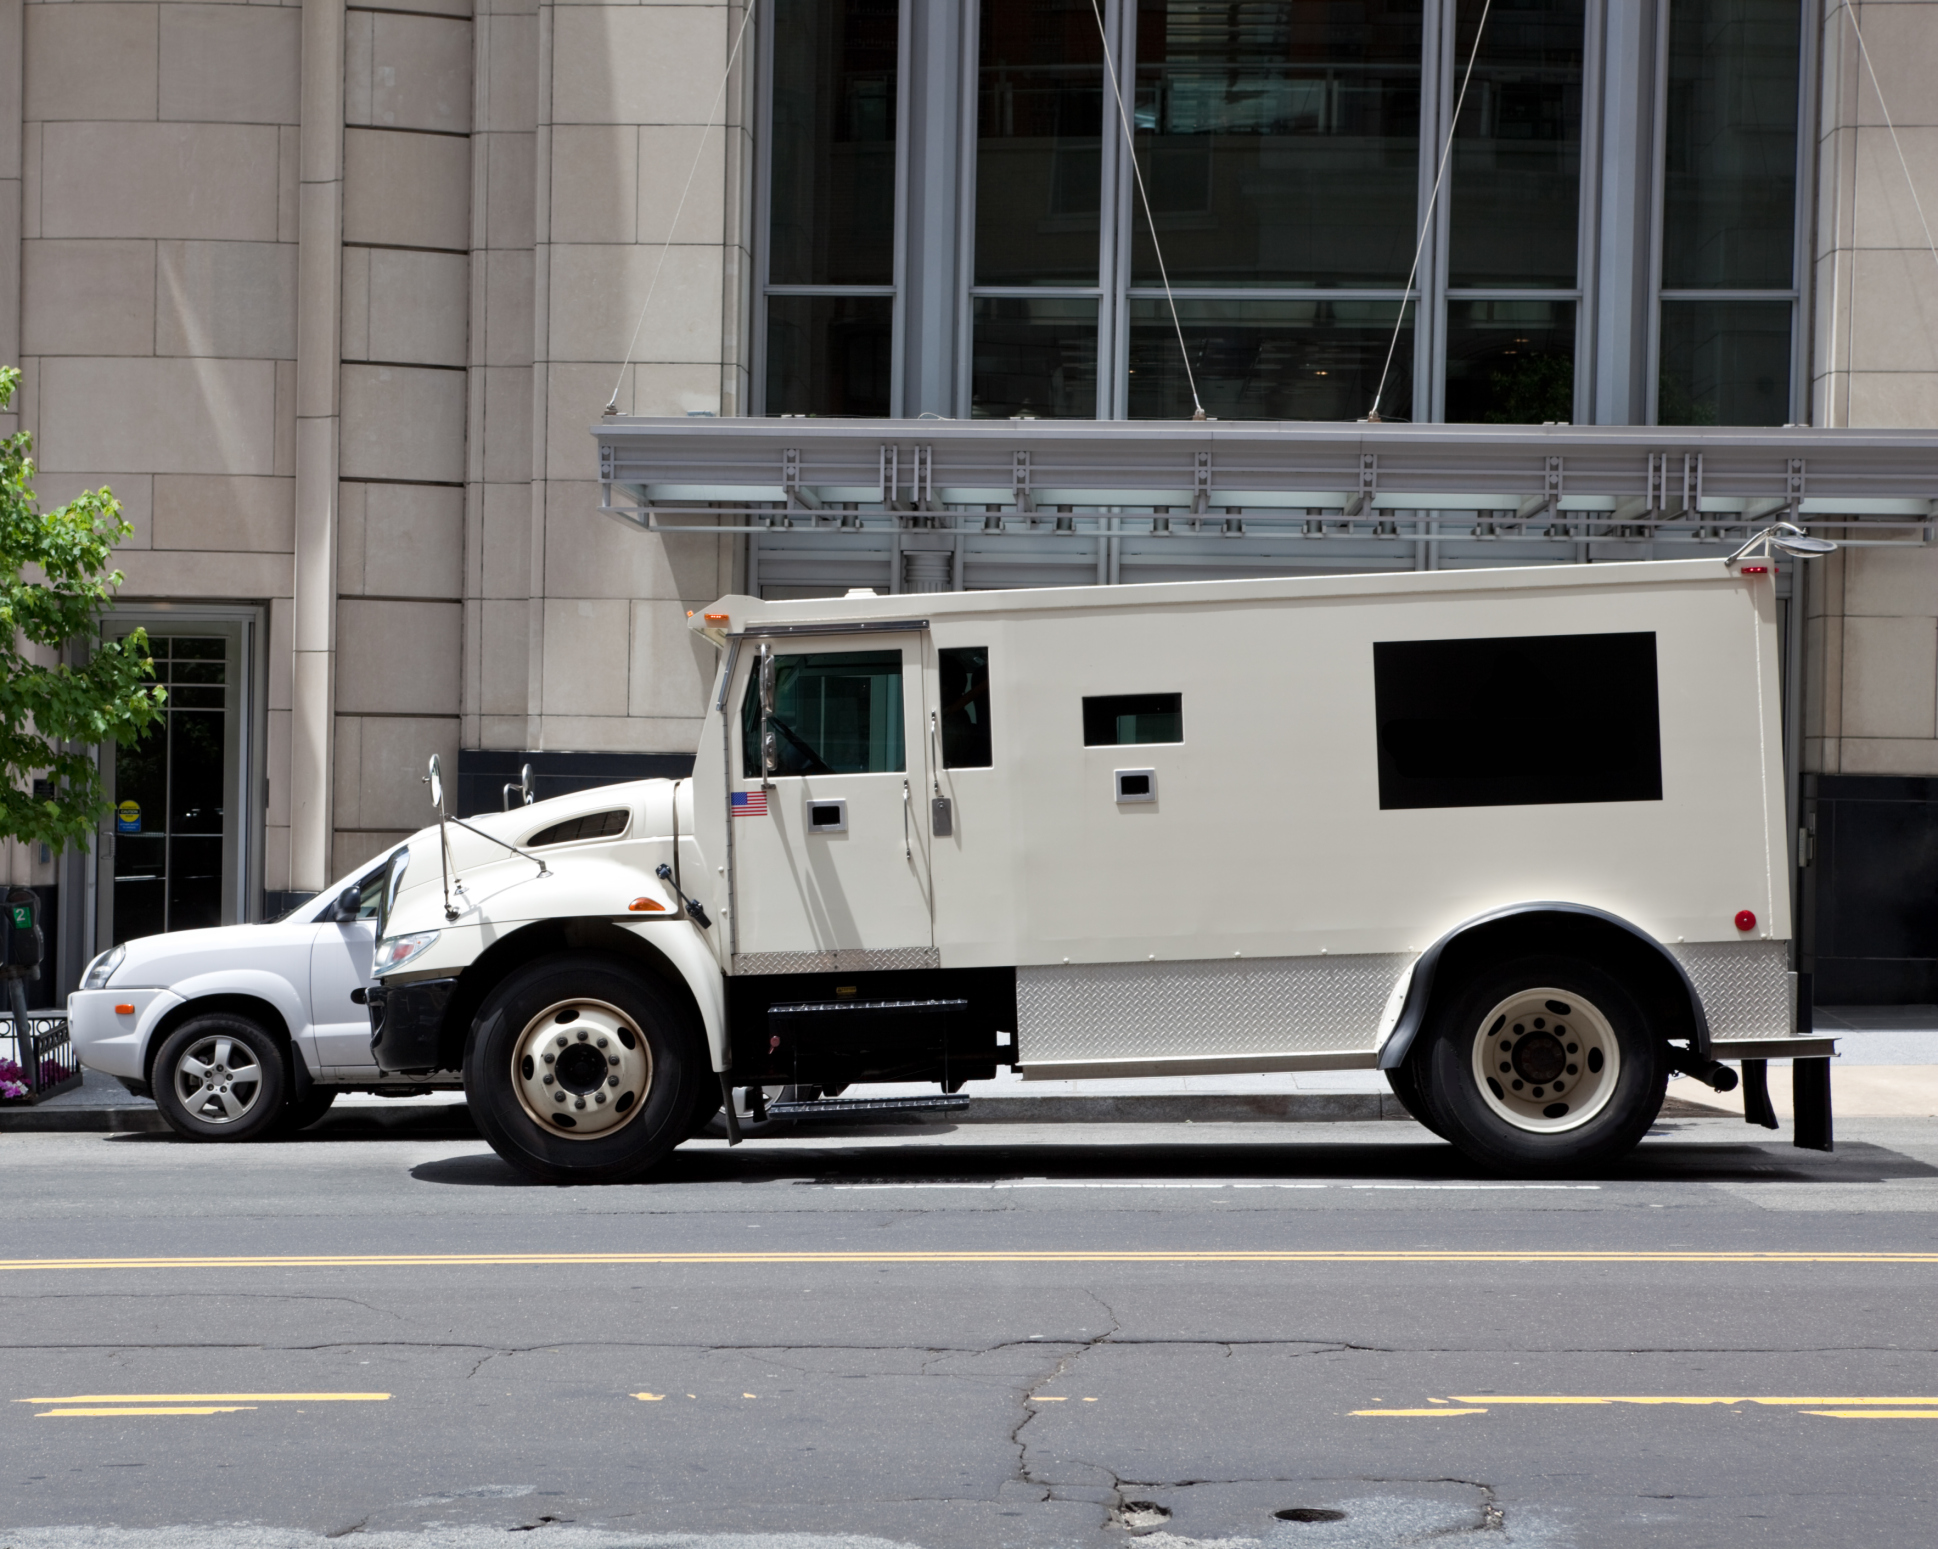 How to Become an Armored Truck Driver/Guard